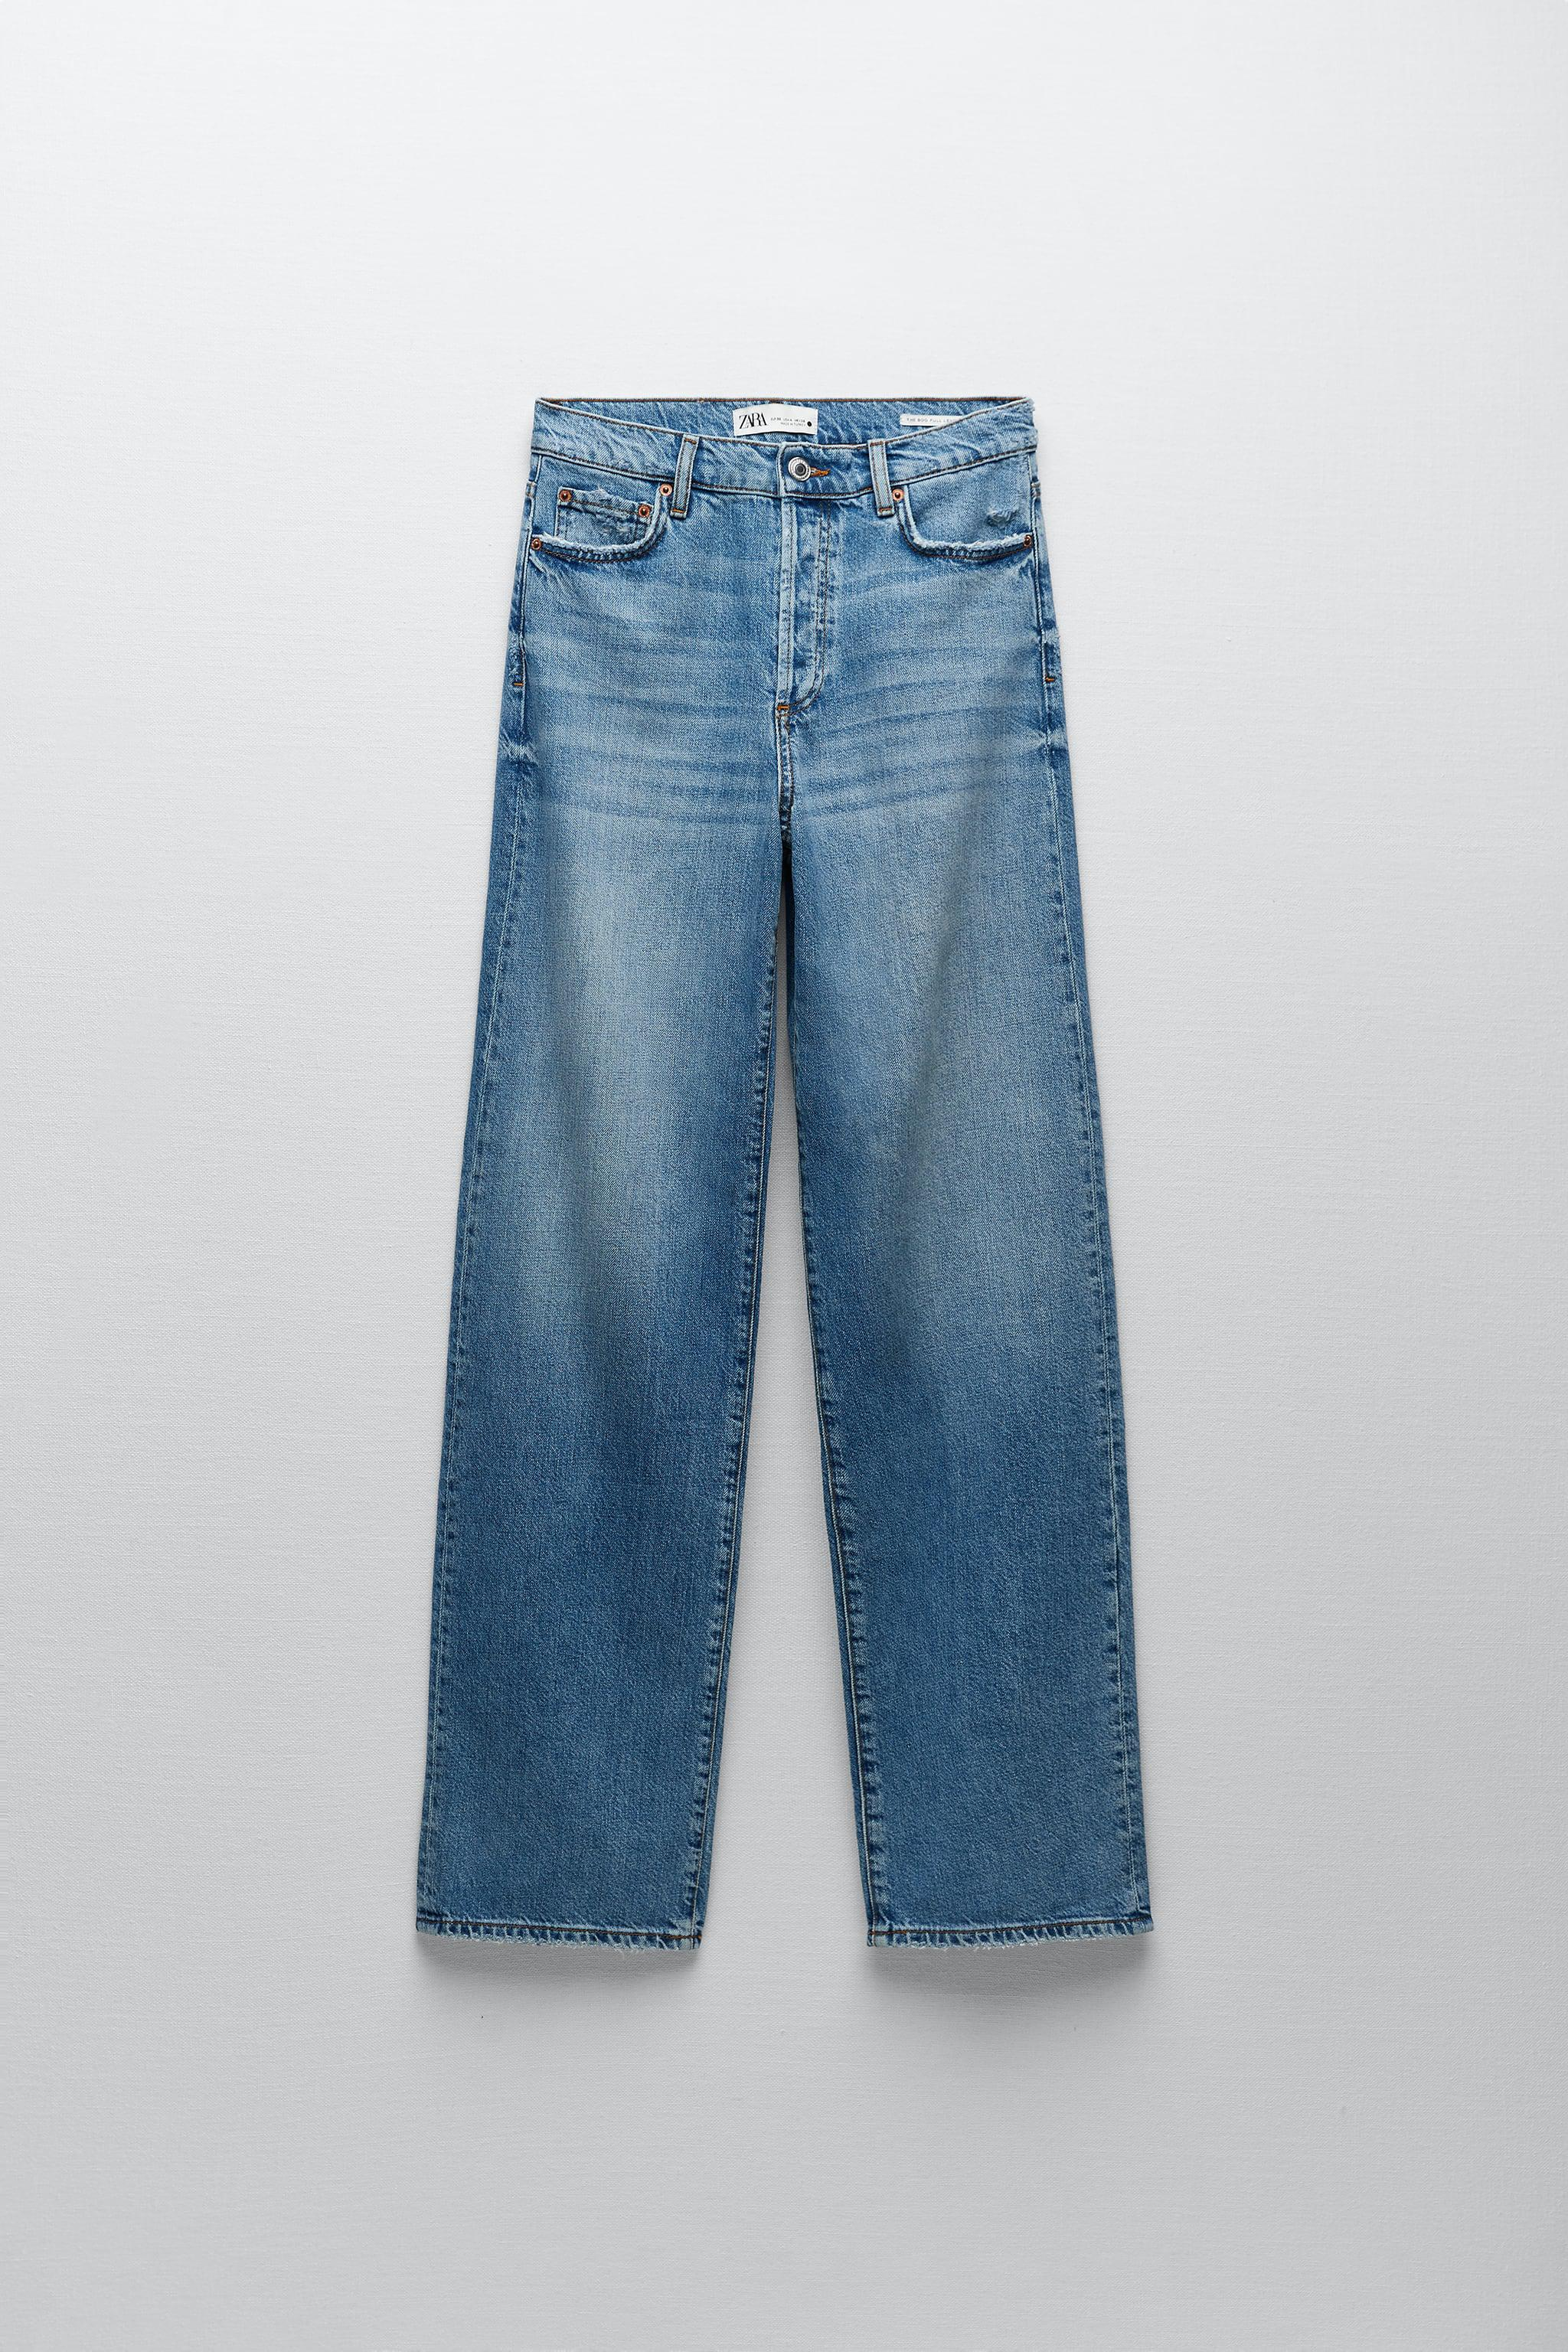 THE BOO FULL LENGTH ZW JEANS 3